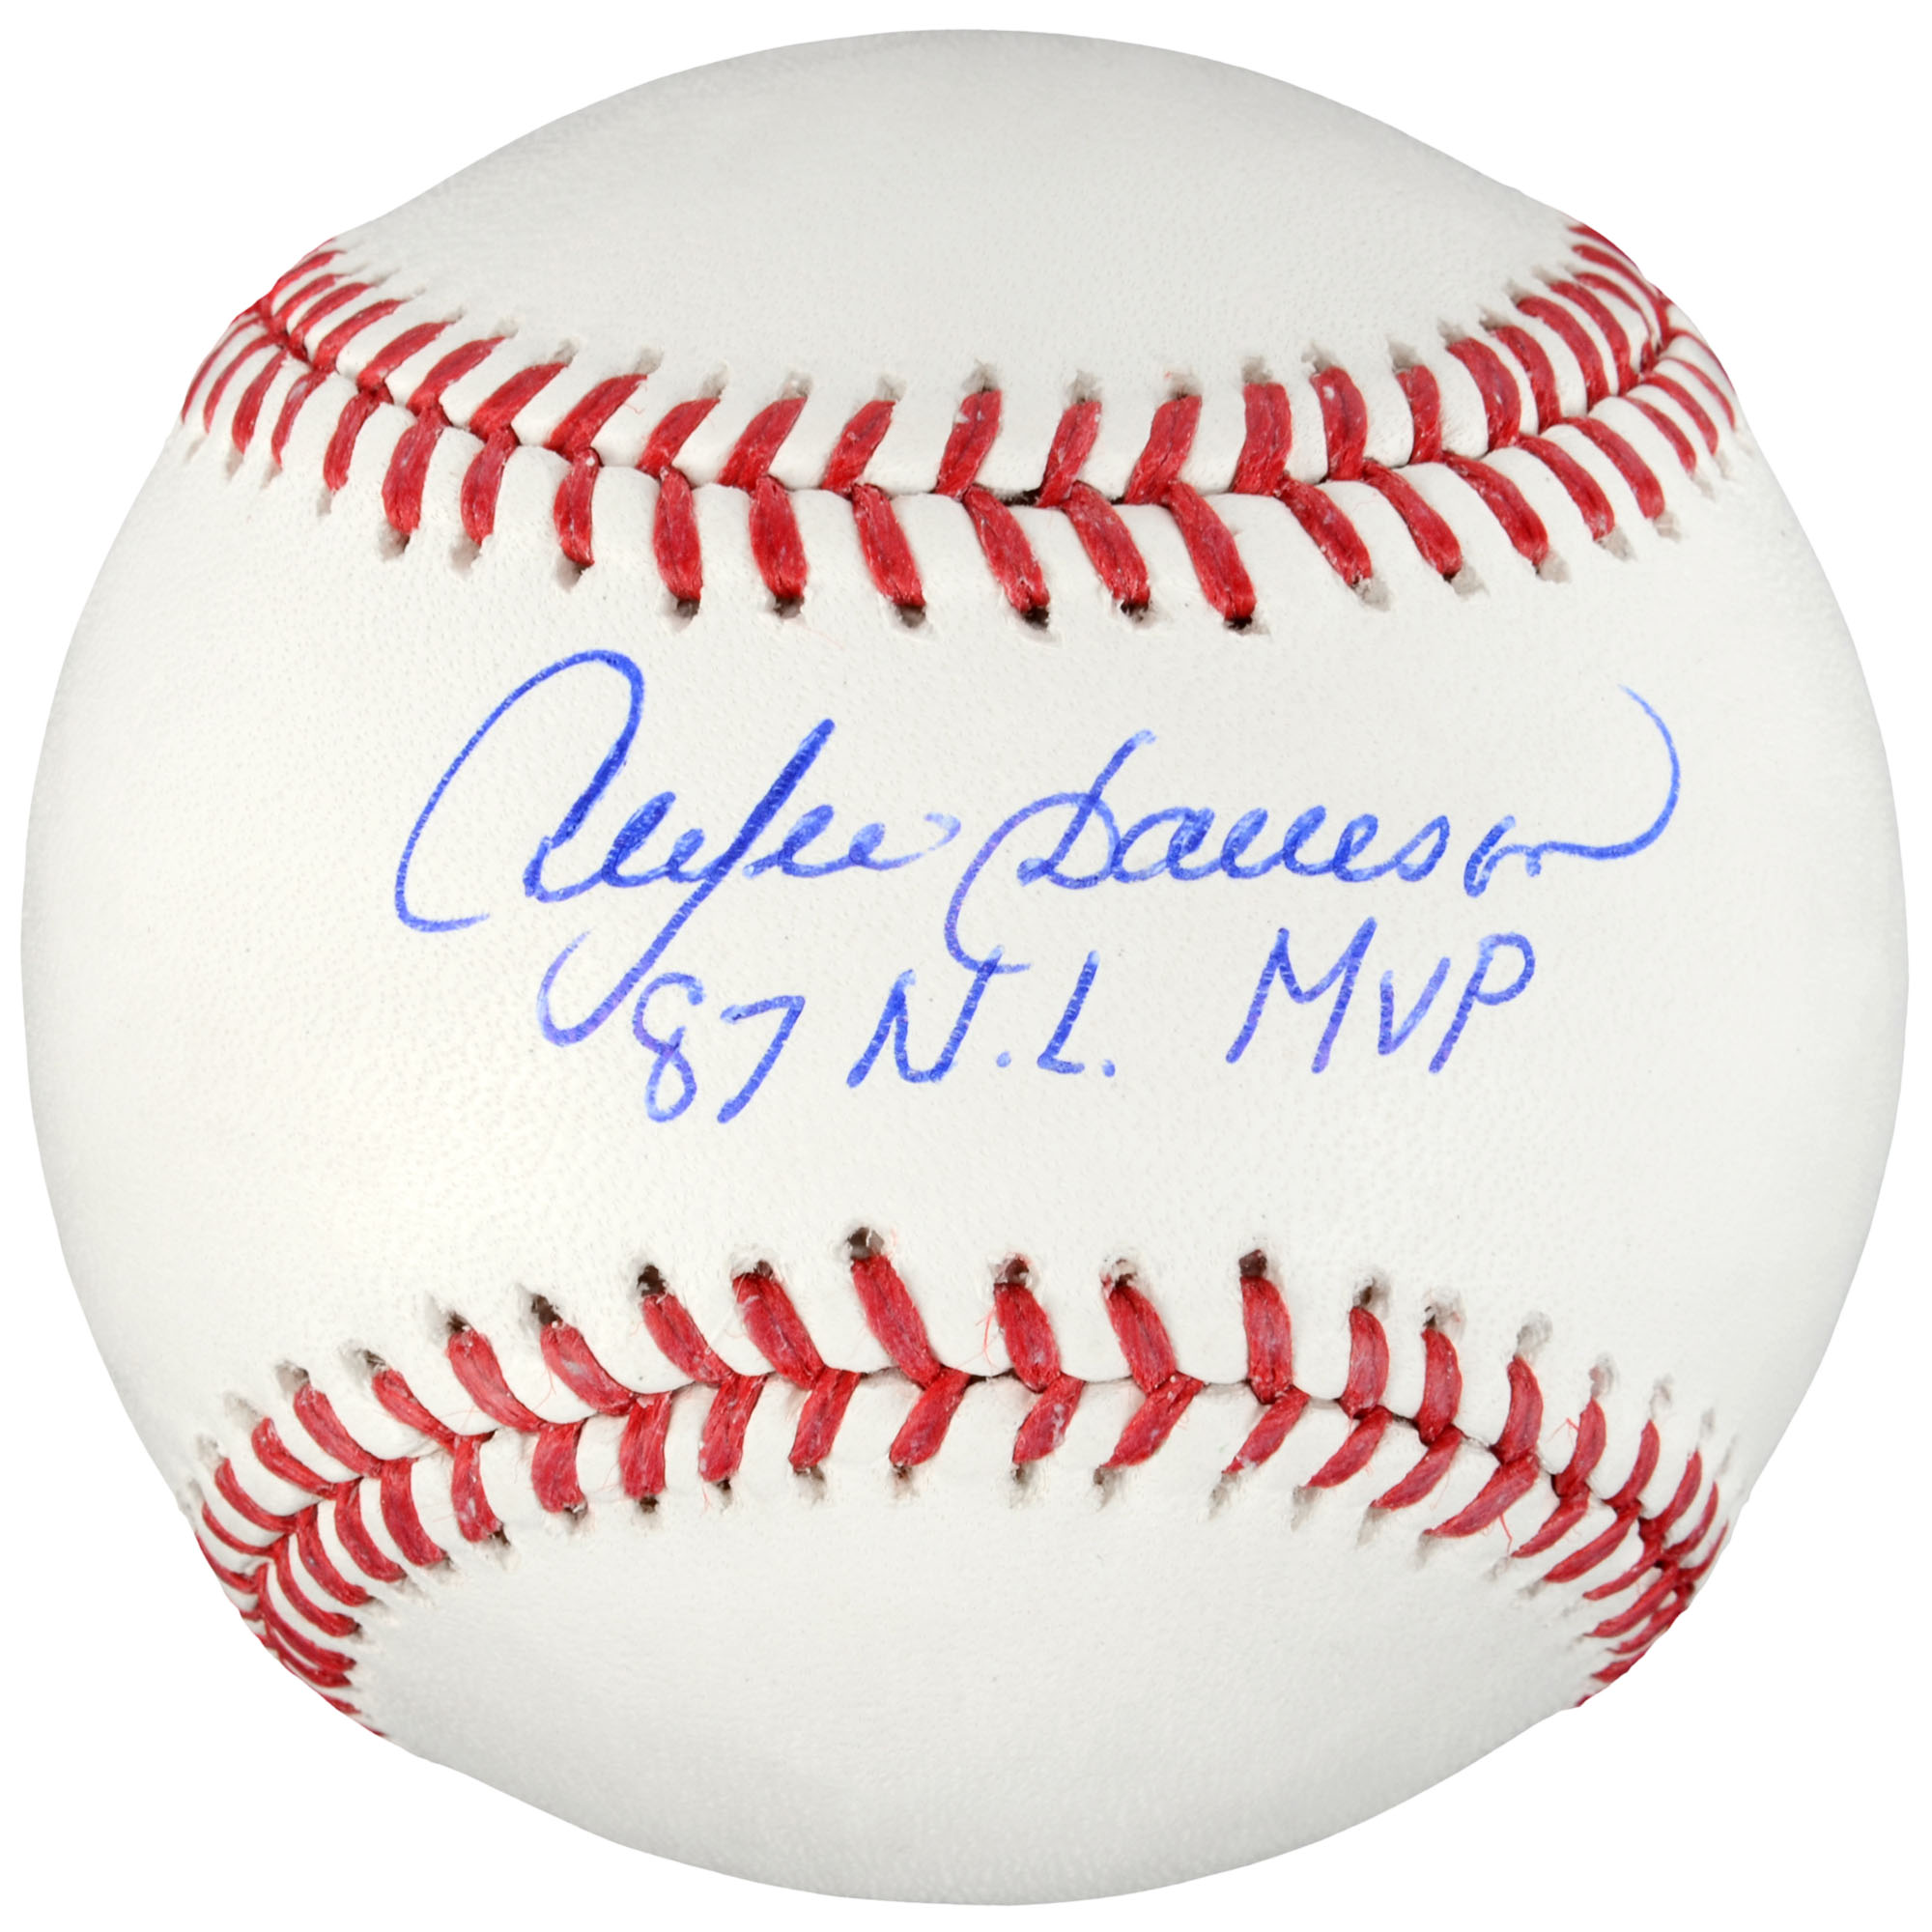 Andre Dawson Chicago Cubs Fanatics Authentic Autographed Baseball with 87 NL MVP Inscription - No Size